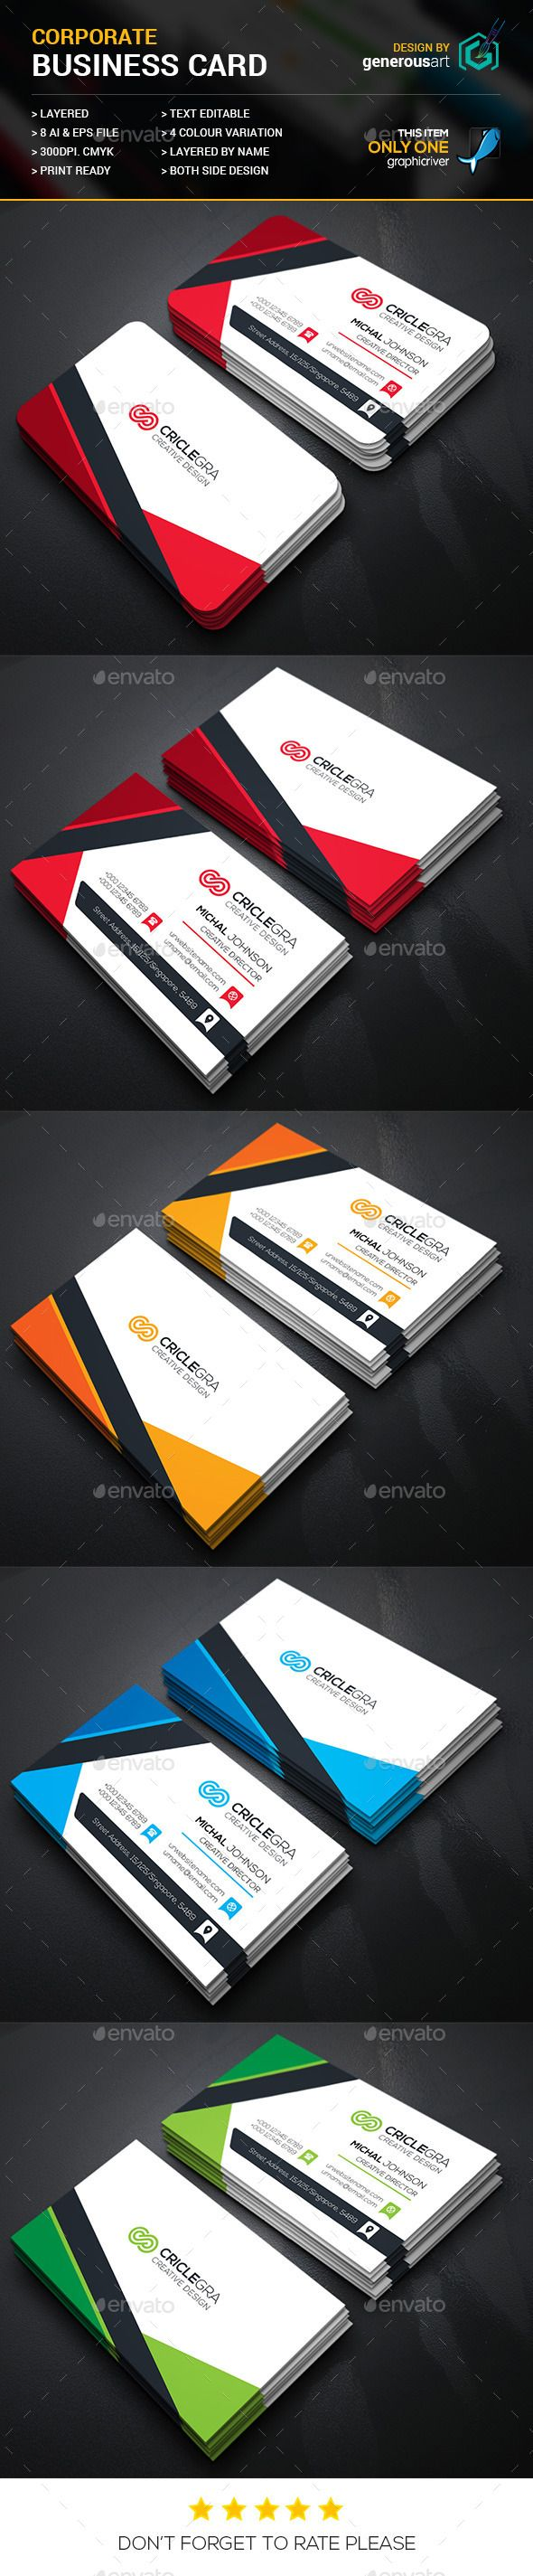 Corporate Business Cards Template #design Download: http://graphicriver.net/item/corporate-business-cards/12408930?ref=ksioks